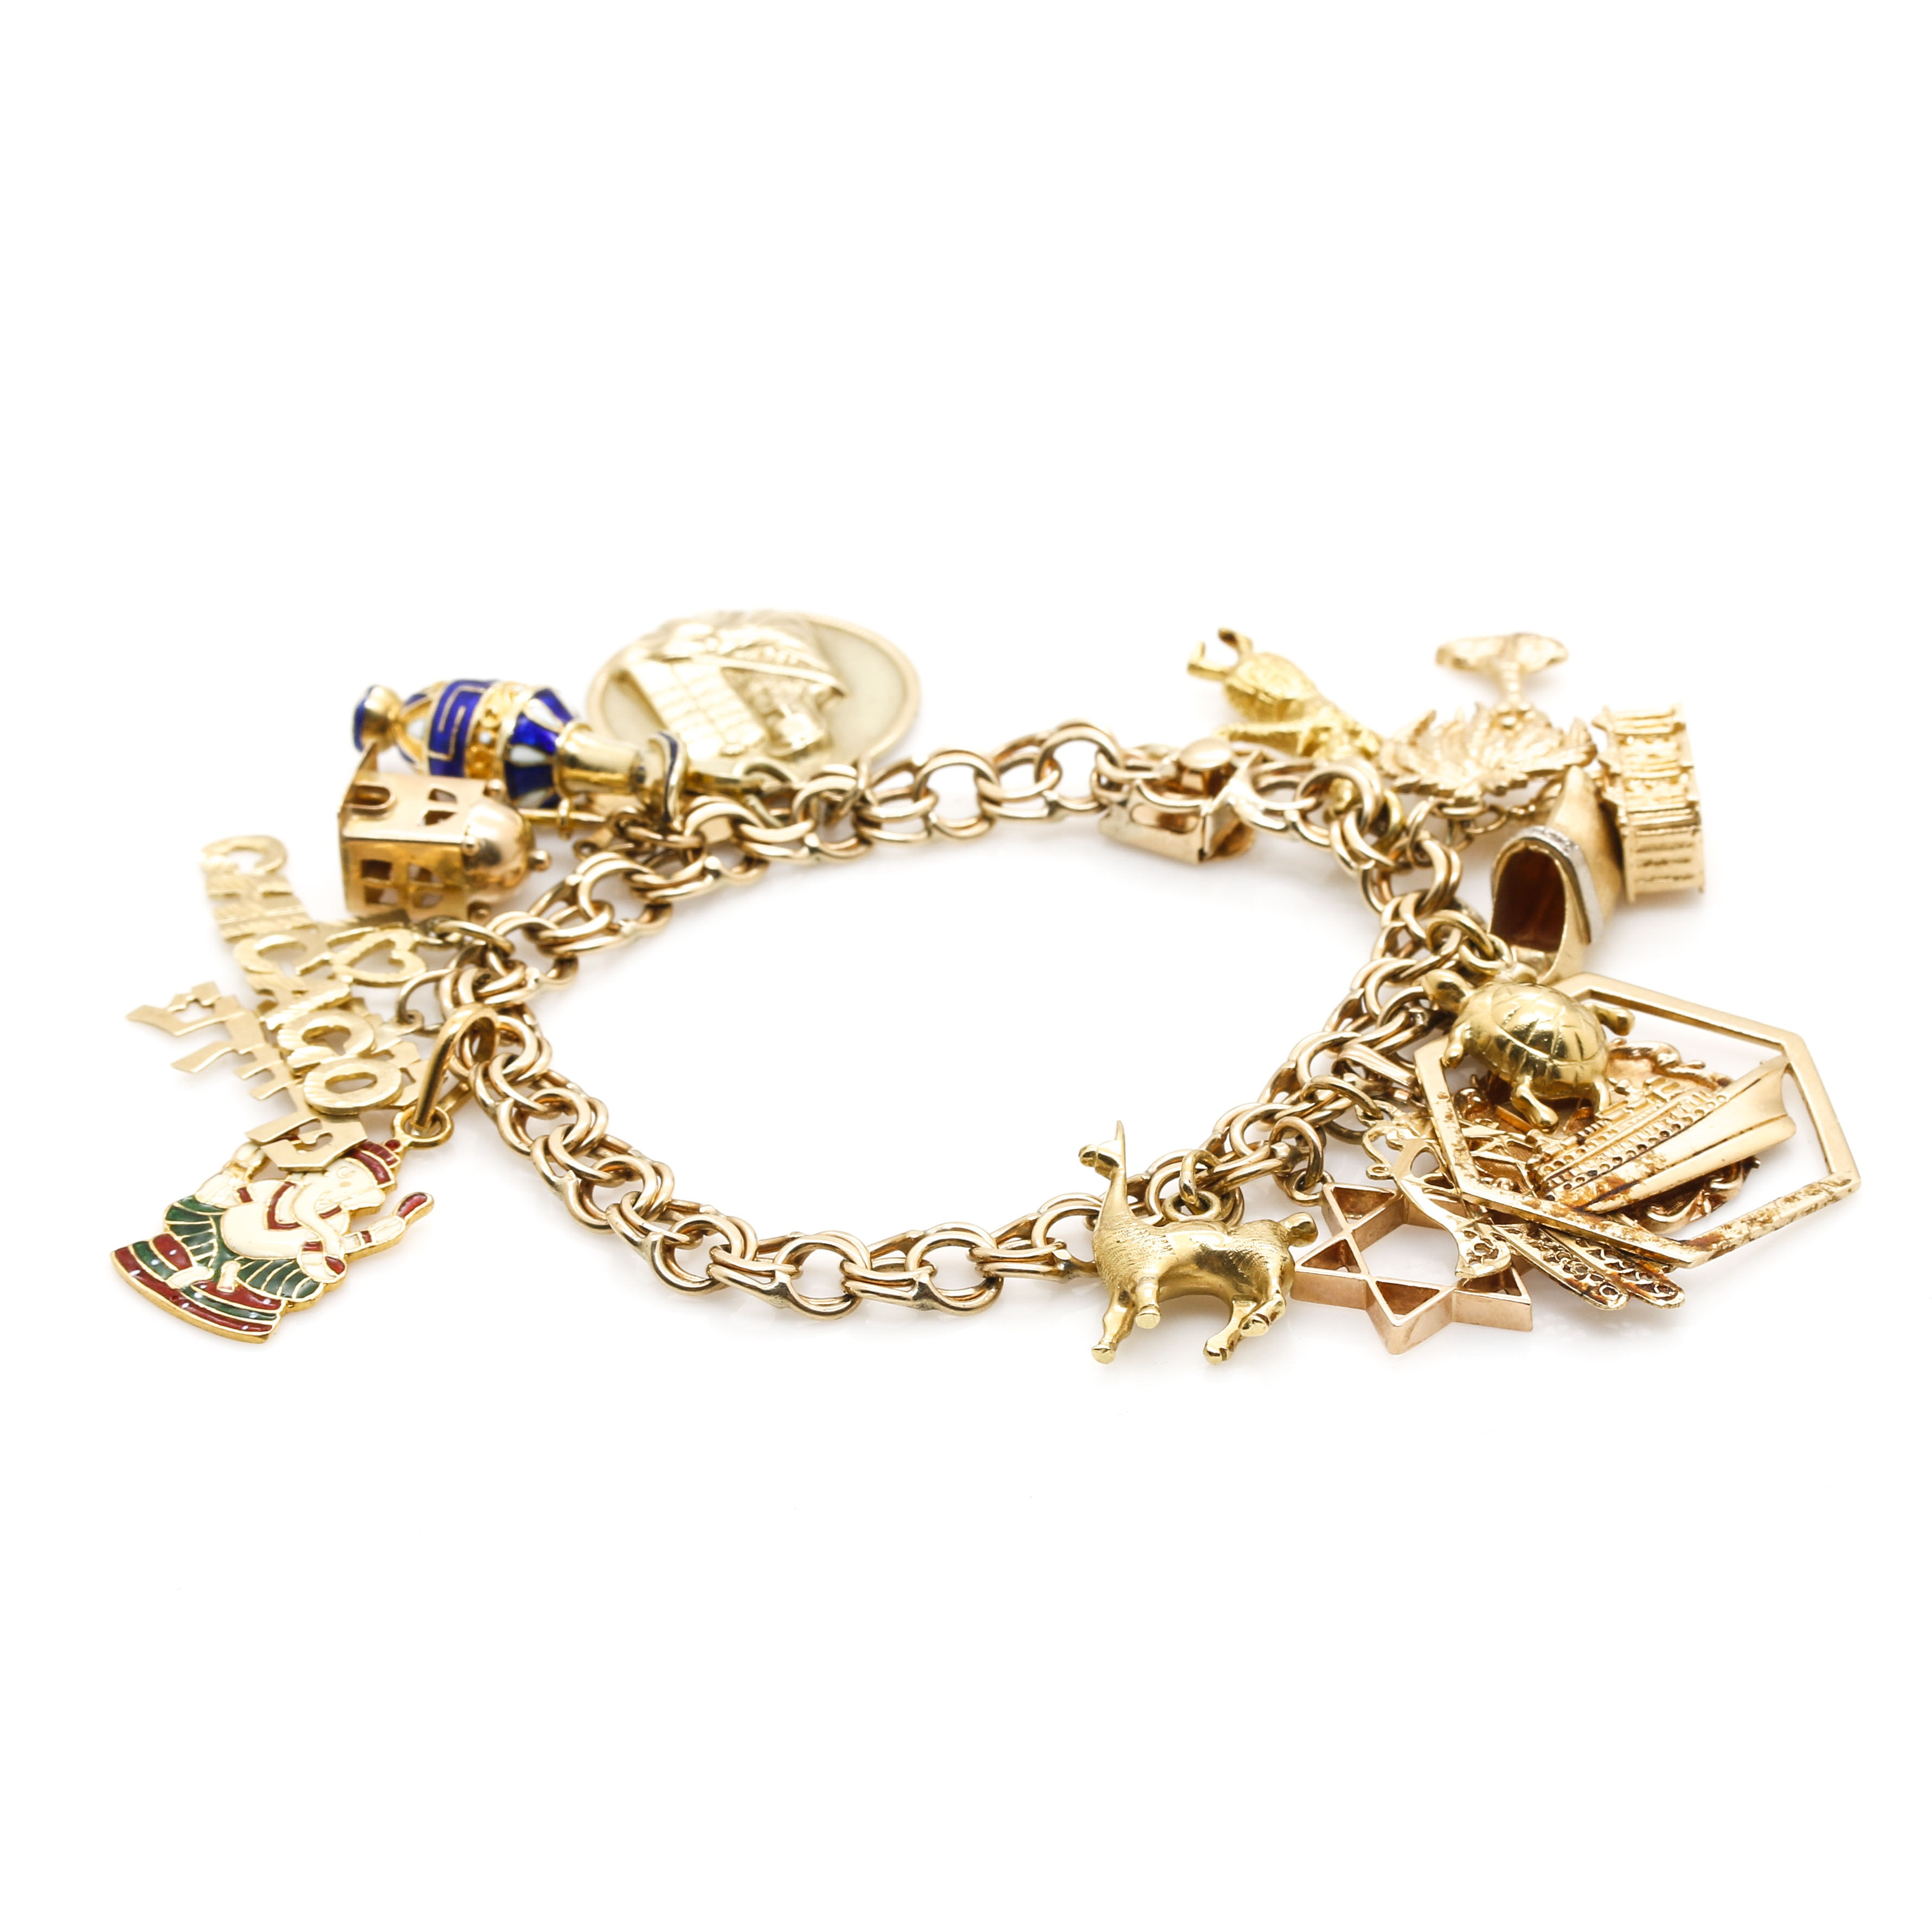 14K Yellow Gold Charm Bracelet With Mixed Gold Charms